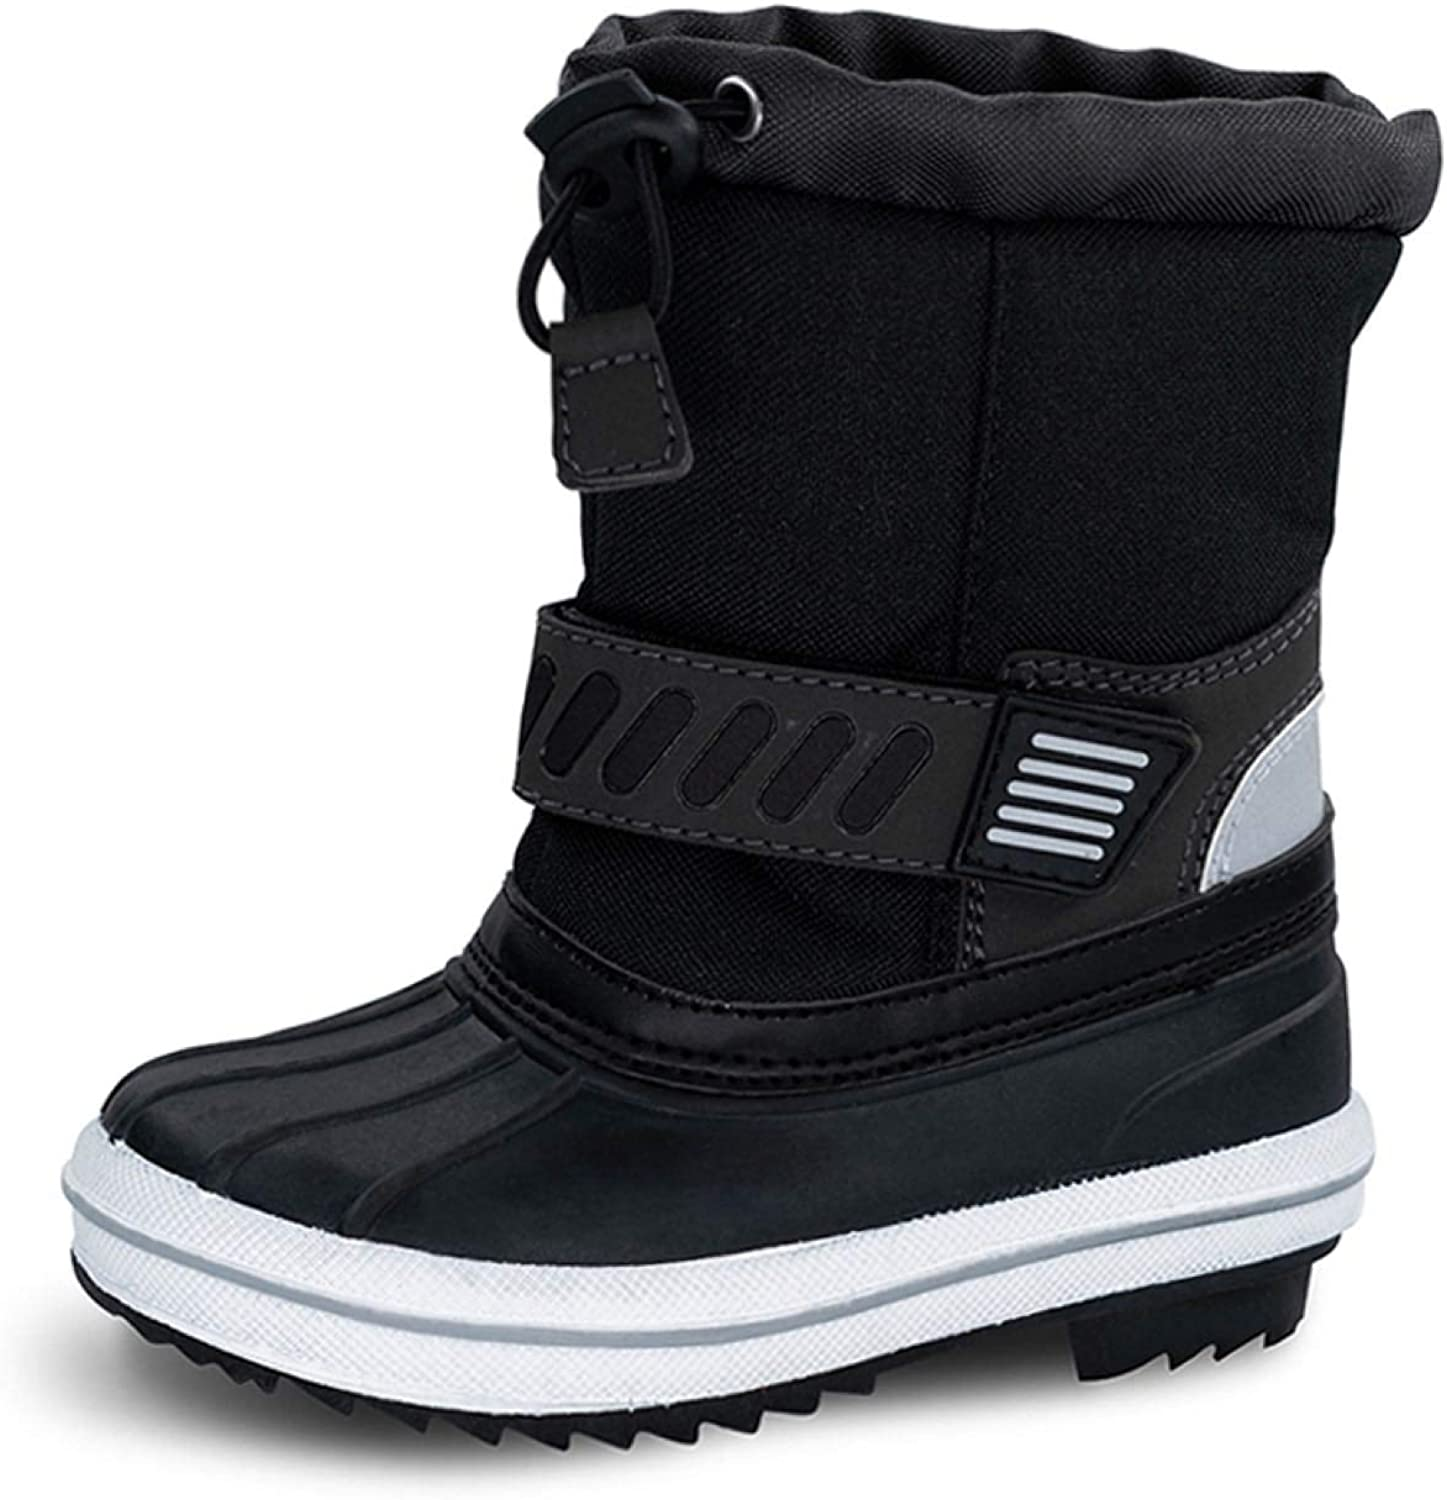 TF STAR Boys Girls Toddler Ankle Winter Snow Boots Outdoor Waterproof Cold Weather Snow Boots for Children//Kids